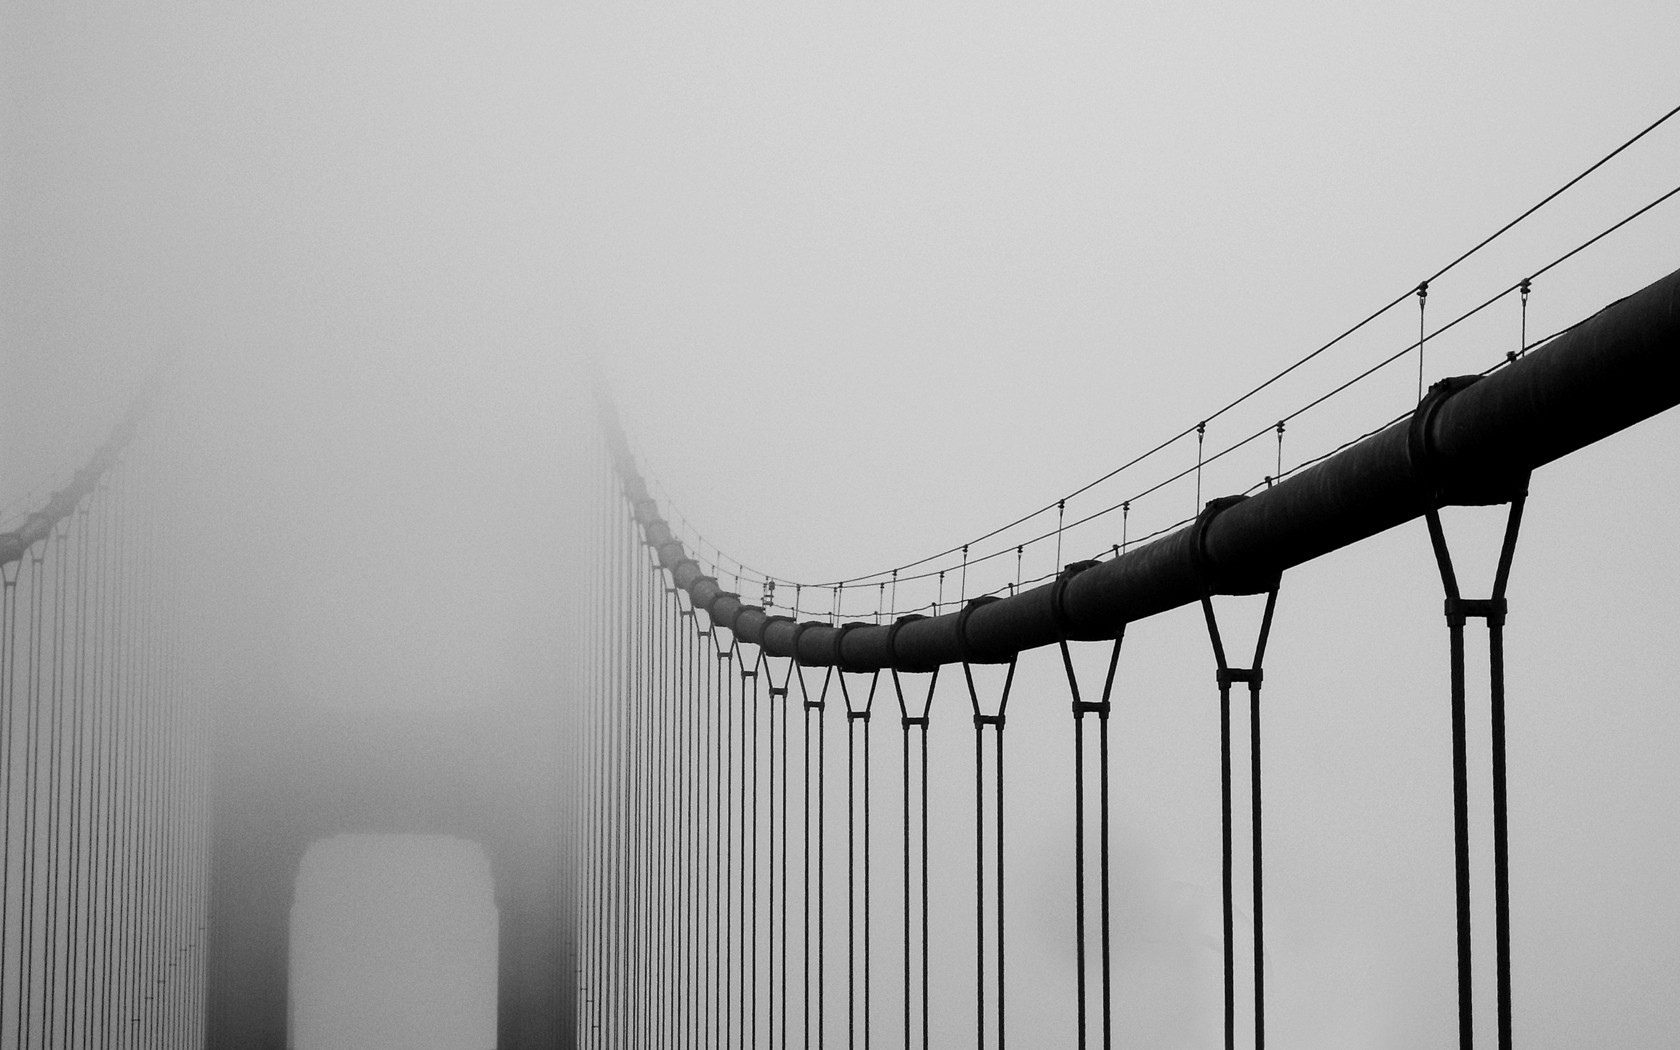 fog Bridges lines HD Wallpaper